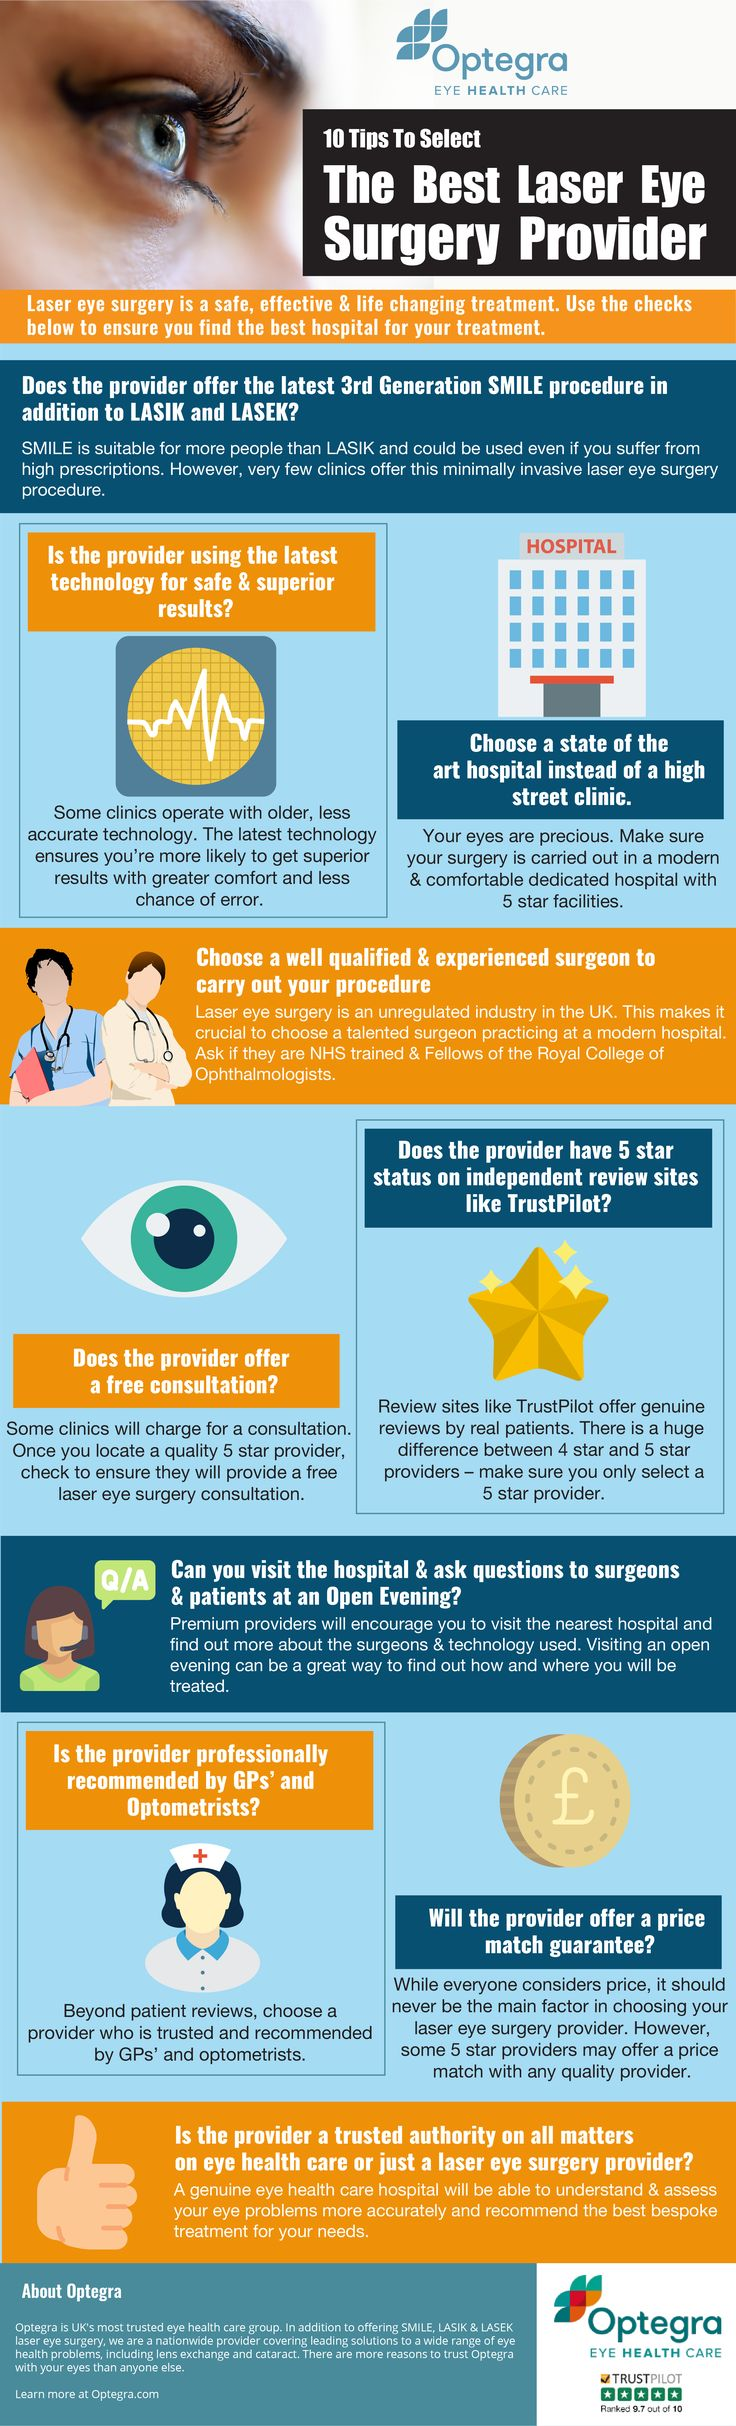 10 Tips To Select The Best Laser Eye Surgery Provider #lasereyesurgery #infographic #LASEK #LASIK #SMILE